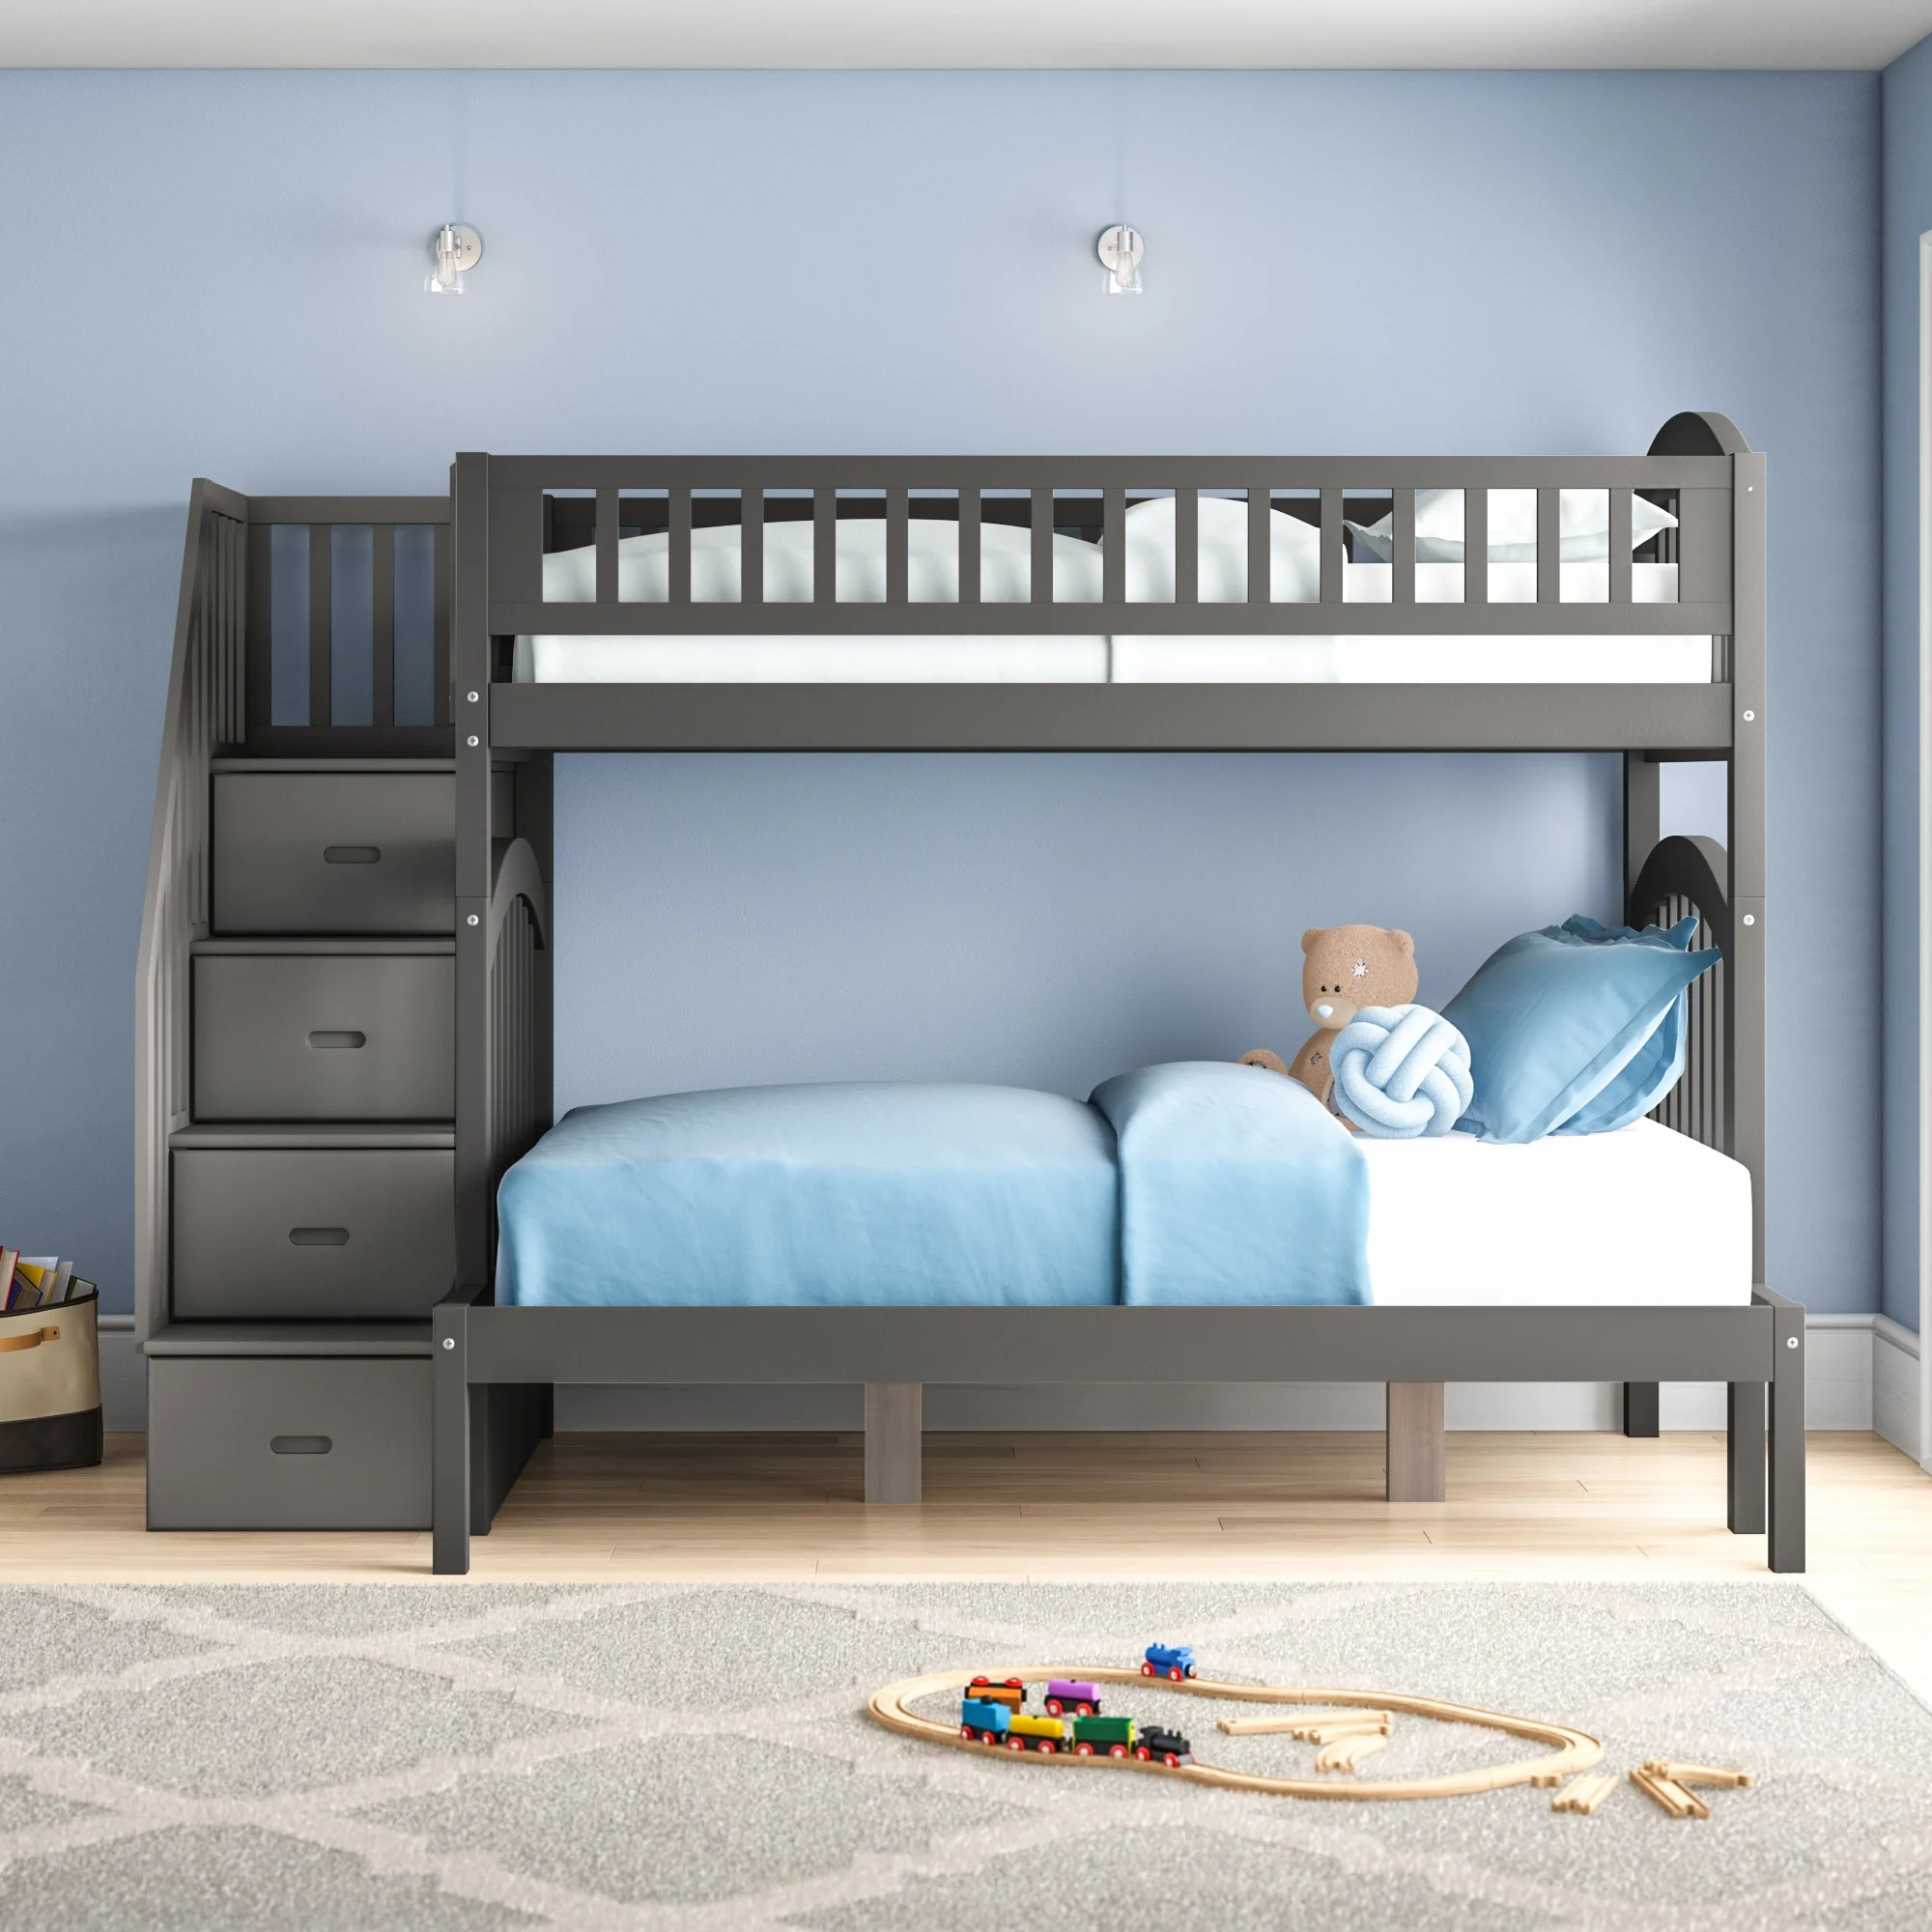 Harriet Bee Salem Staircase Twin Over Full Bunk Bed With Drawers Reviews